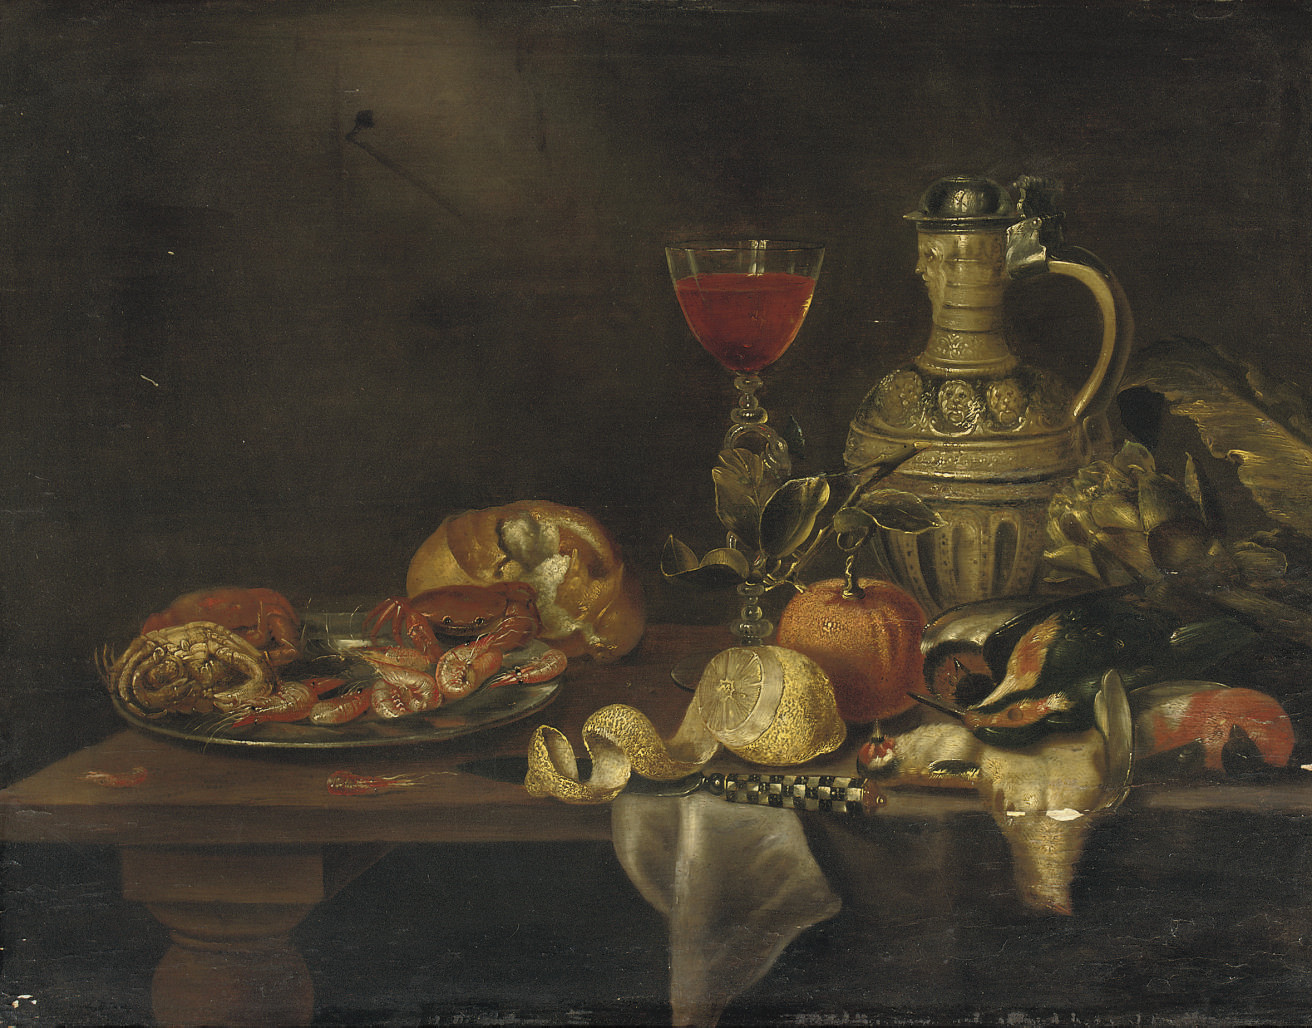 A silver plate with seafood, a roll of bread, a 'Façon-de-Venise of red wine', a 'keulse pot', an artichoke, dead birds, an orange, a partially pealed lemon and a knife